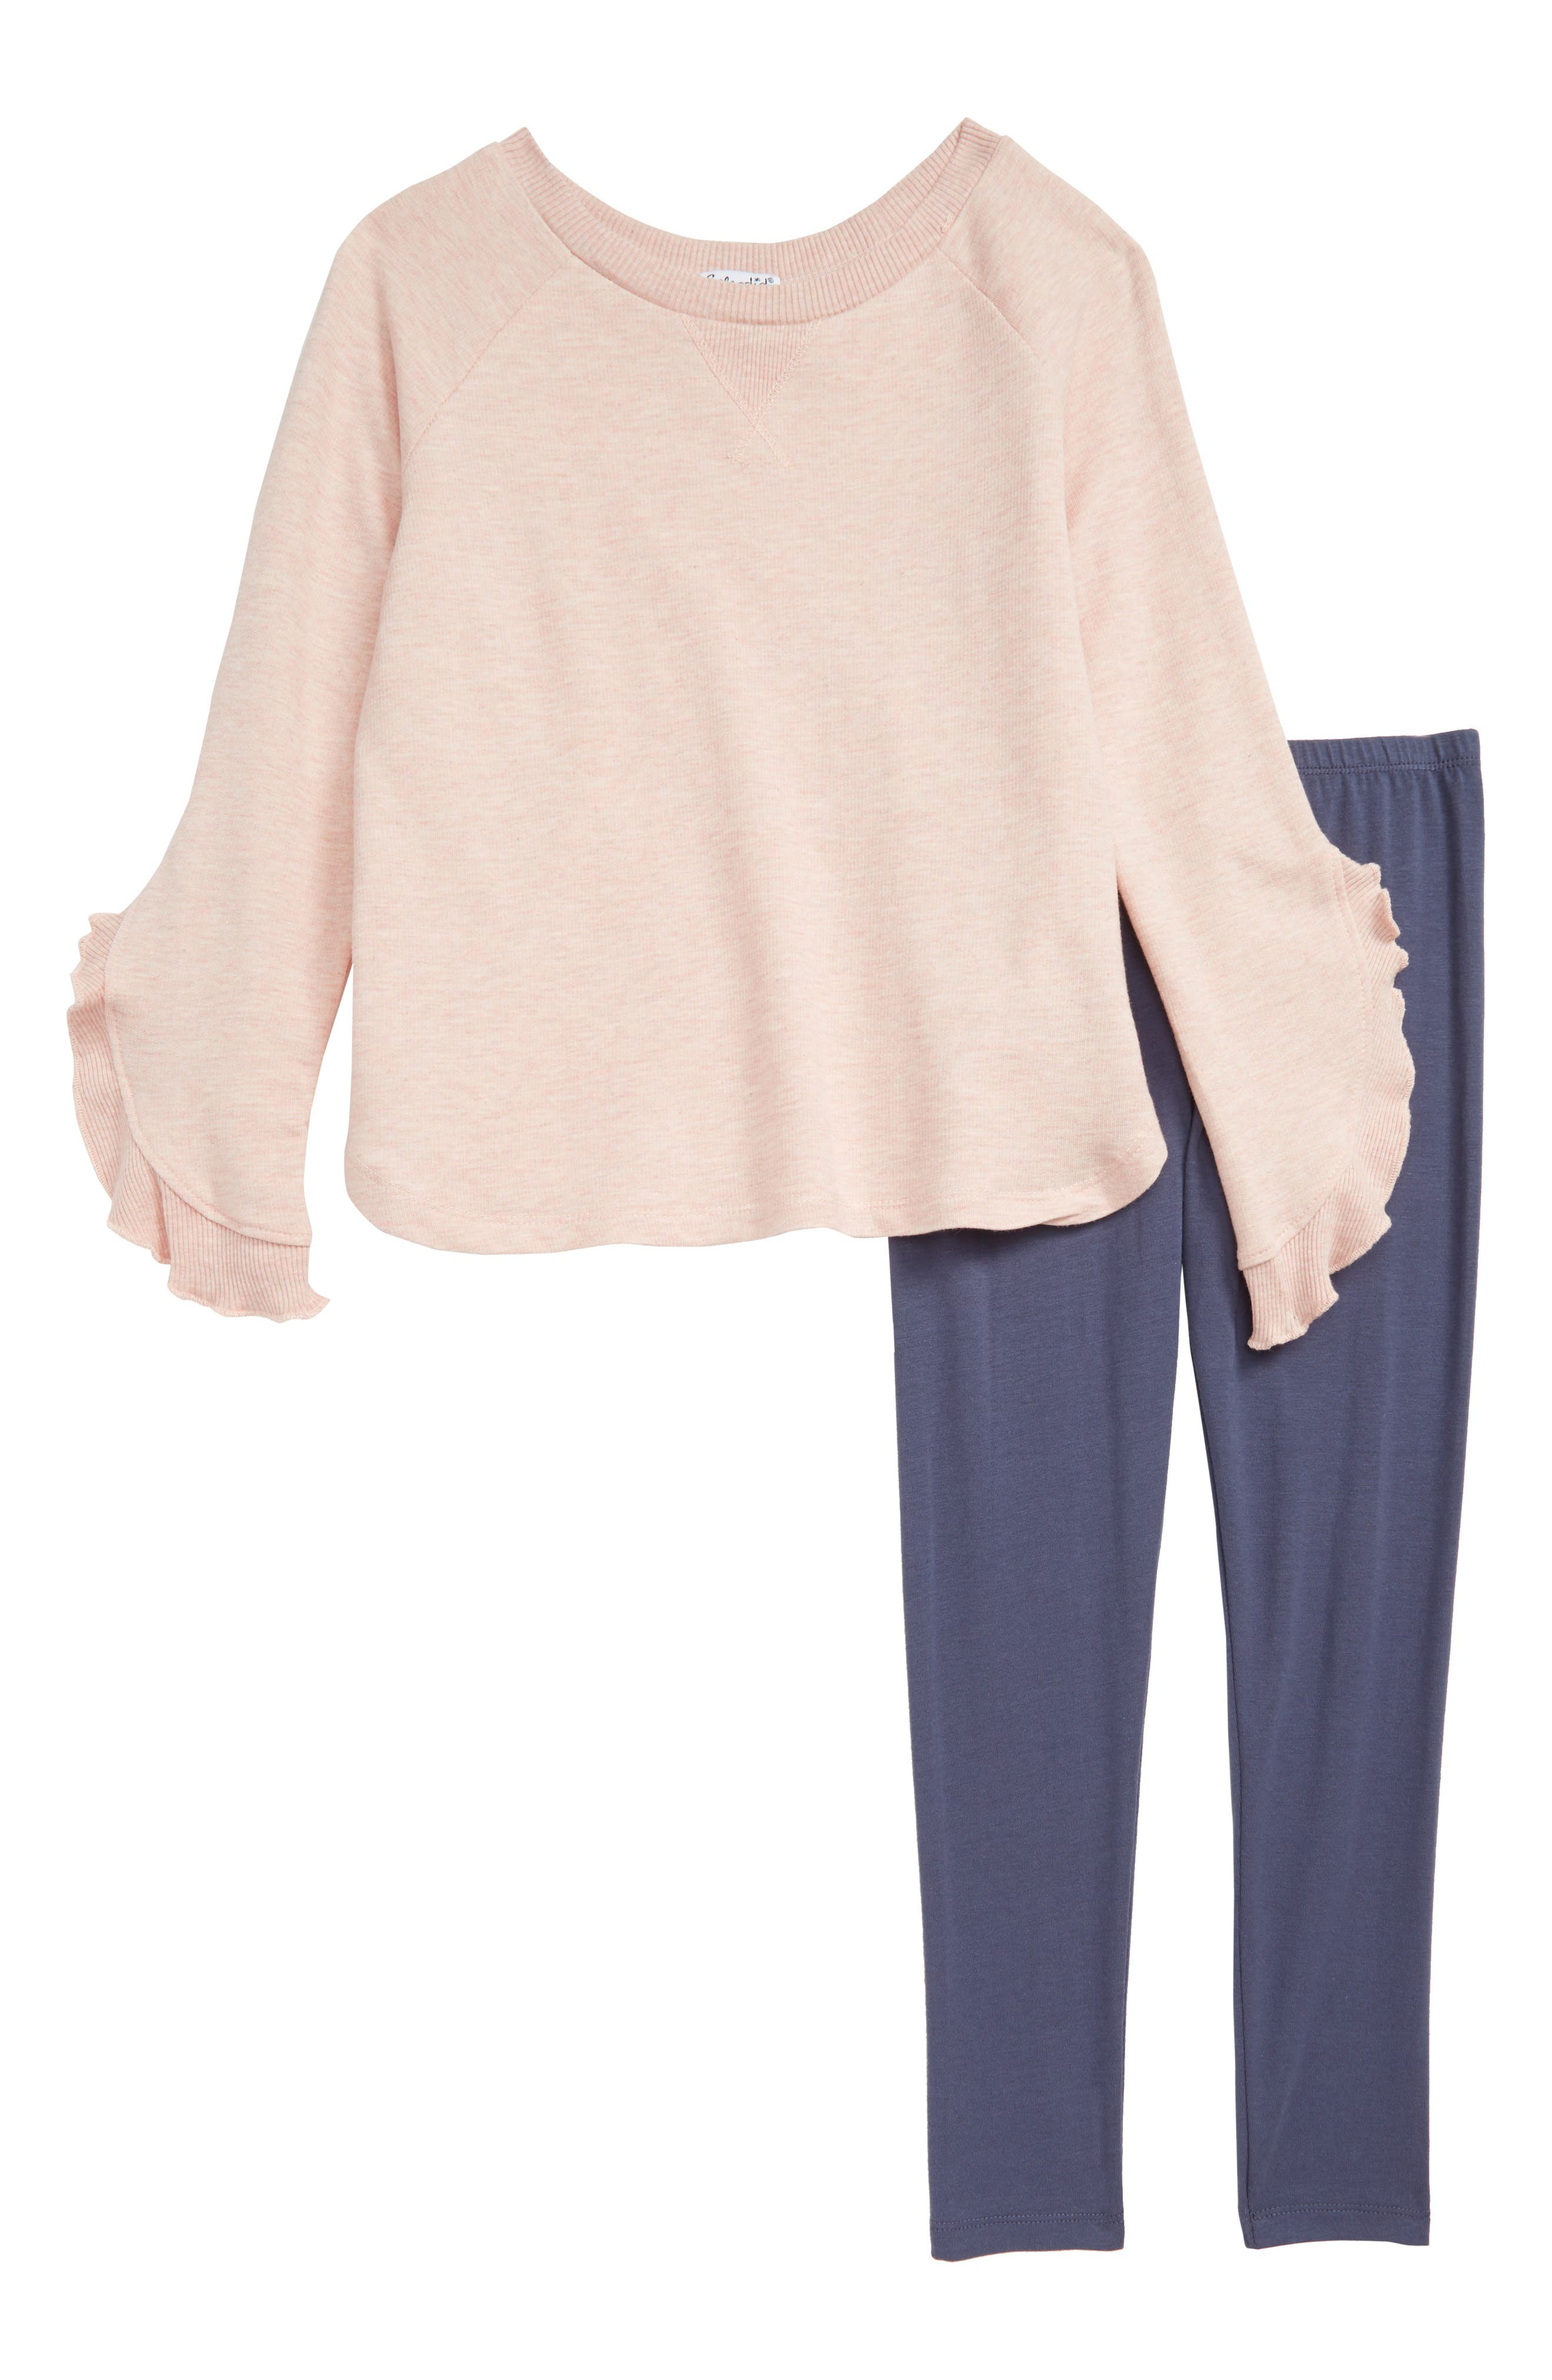 Bell Sleeve Top & Leggings Set,                             Main thumbnail 1, color,                             650